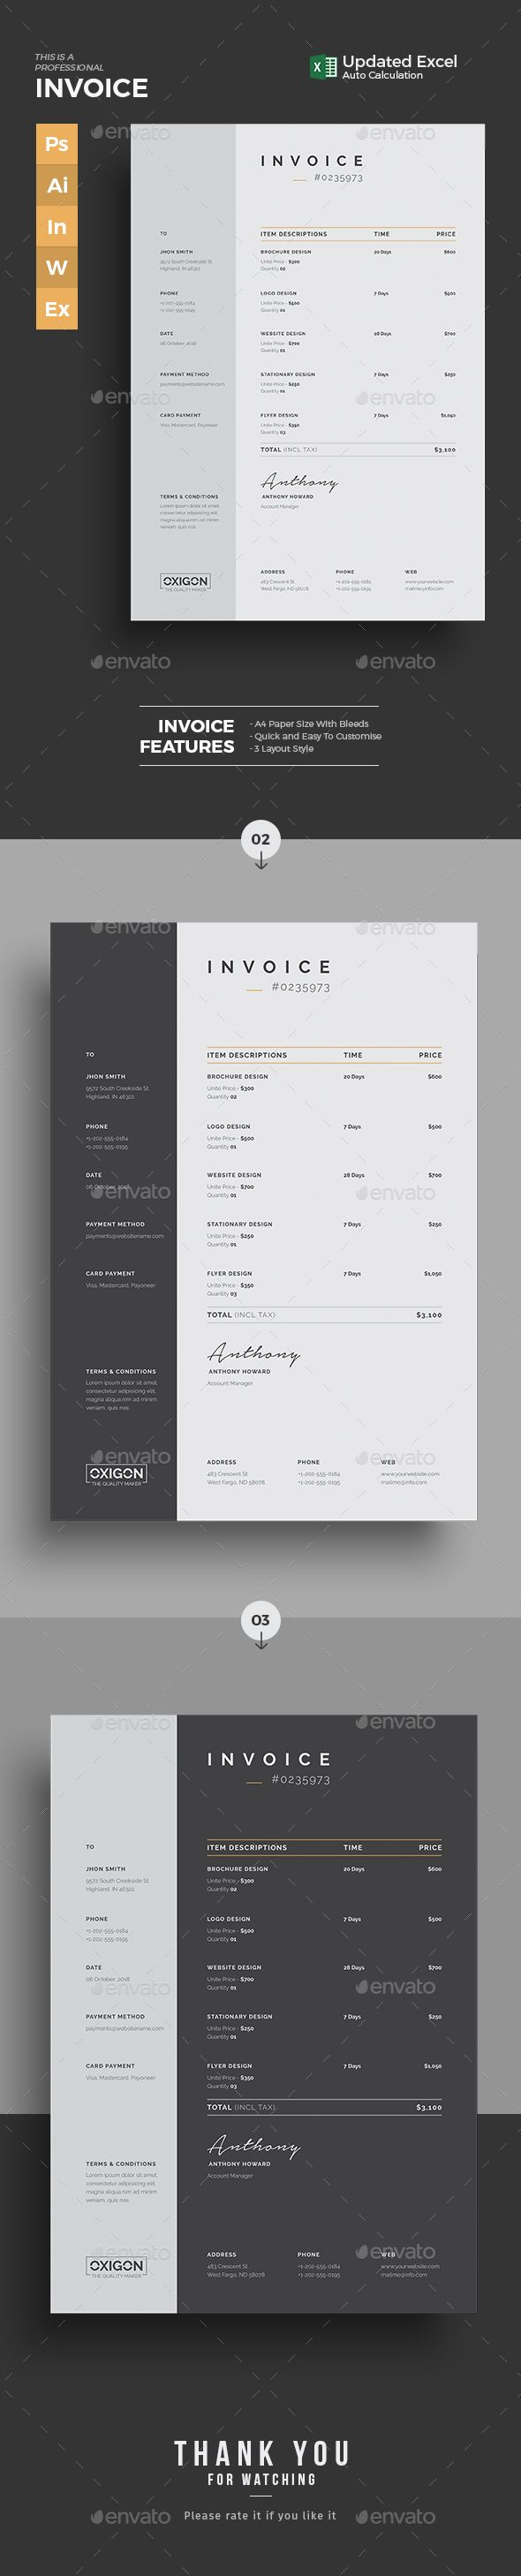 Invoice Clean Invoice Word & Excel Template. Use this Invoice for personal, corporate or company billing purpose. This Simple Invoice will help you to create your invoice very quick and easy. Elegant Invoice Design will convey your brand identity as well as Professional Invoice look.